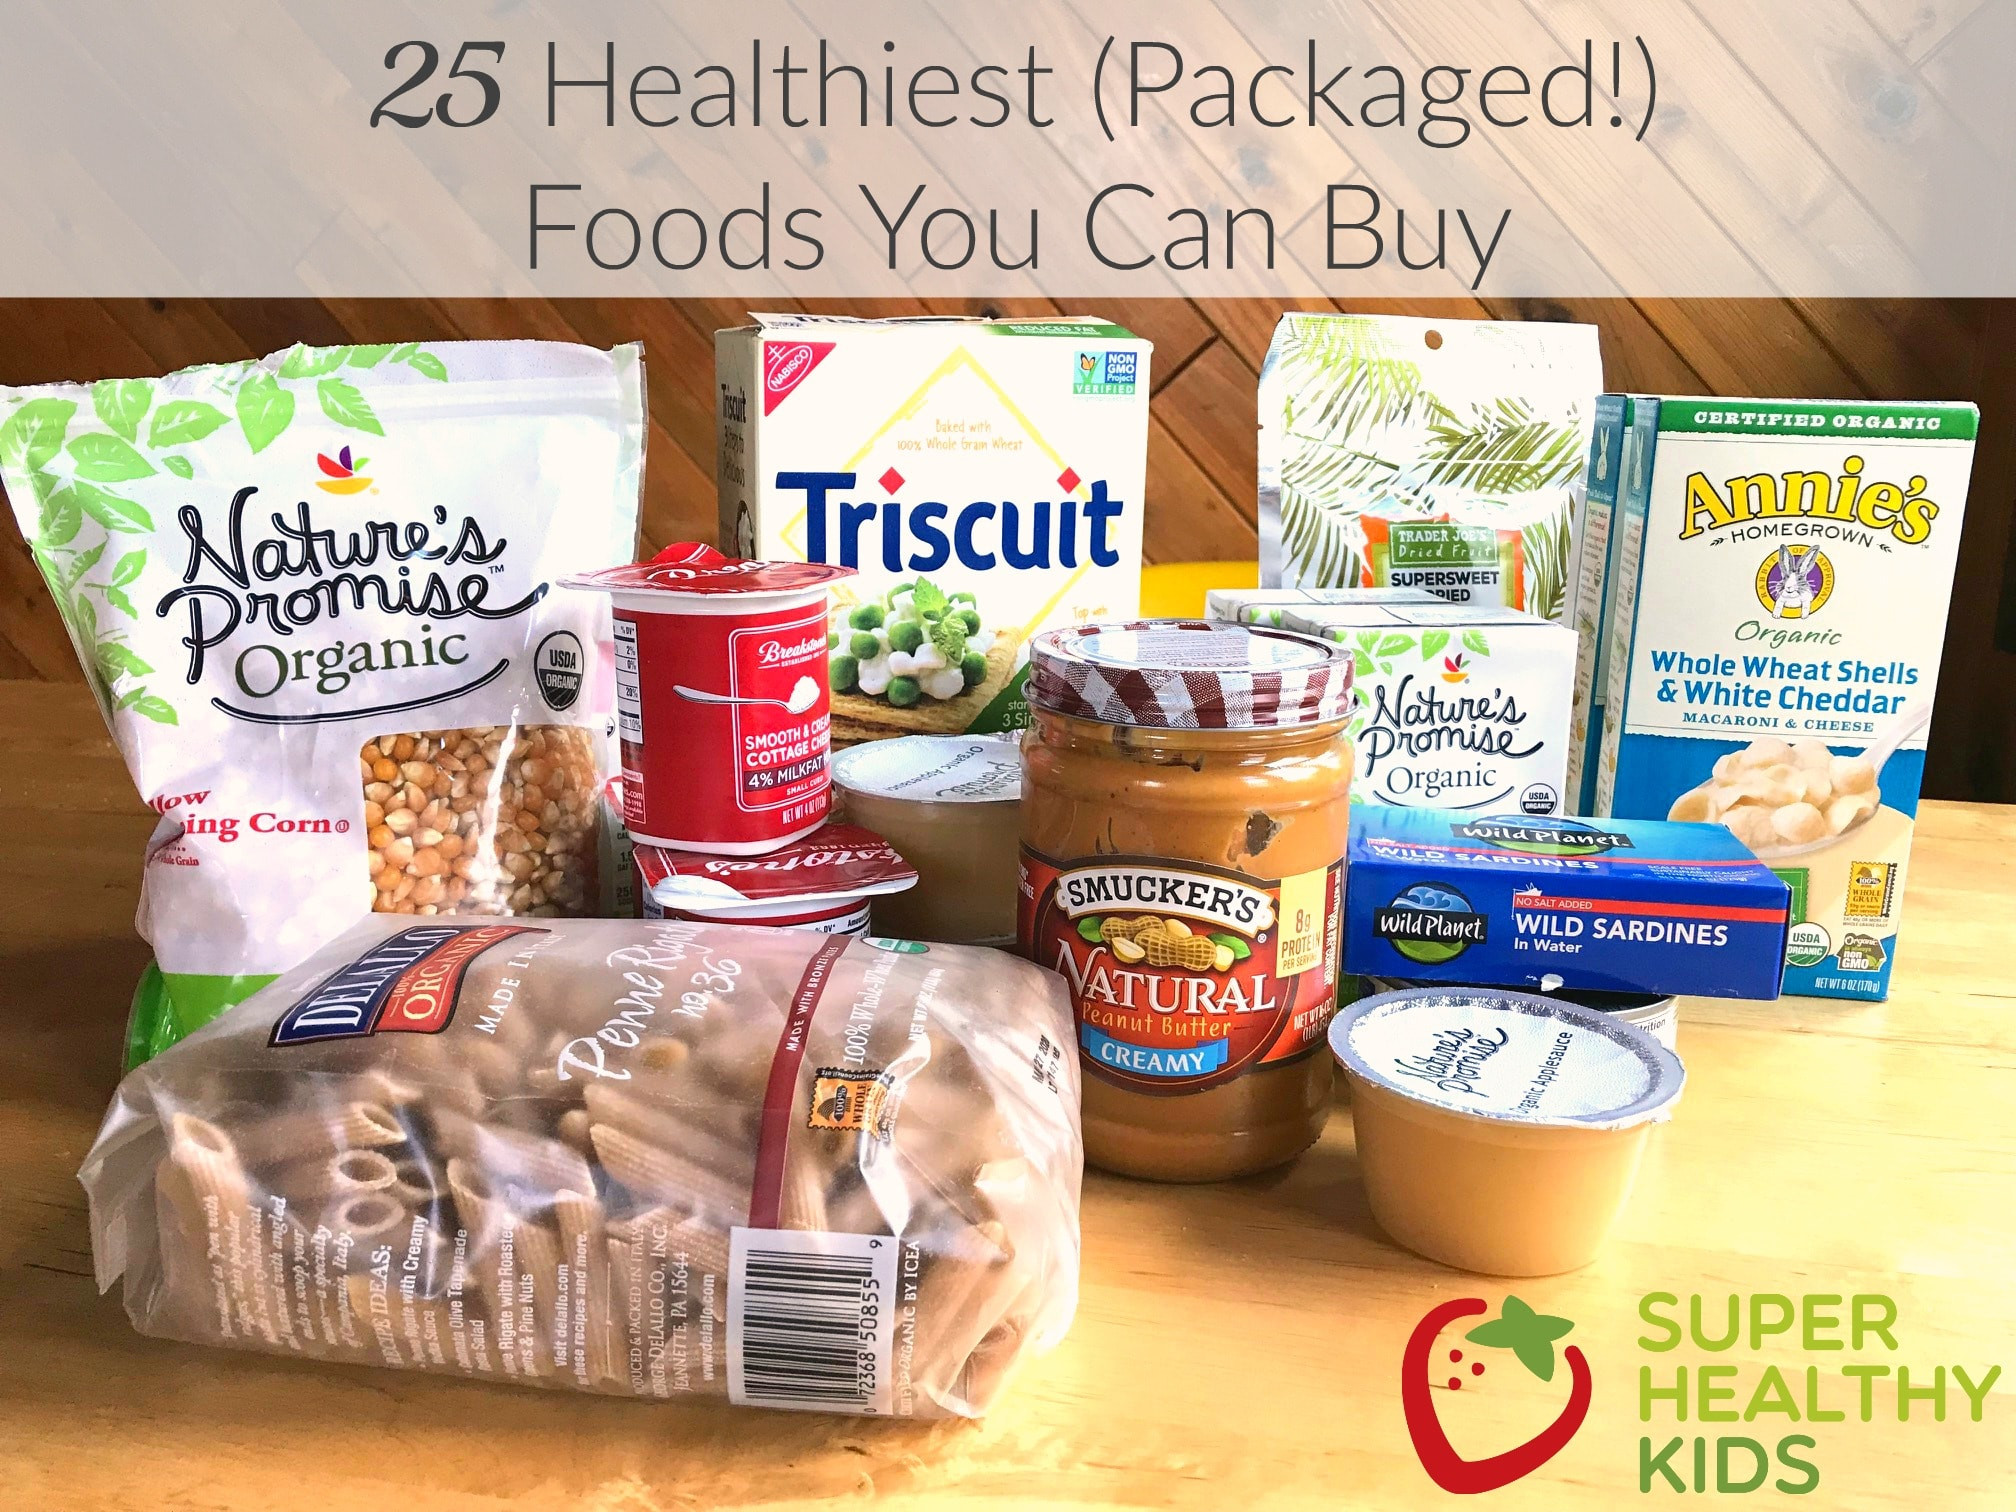 Healthy Packaged Breakfast  25 Healthiest Packaged Foods You Can Buy